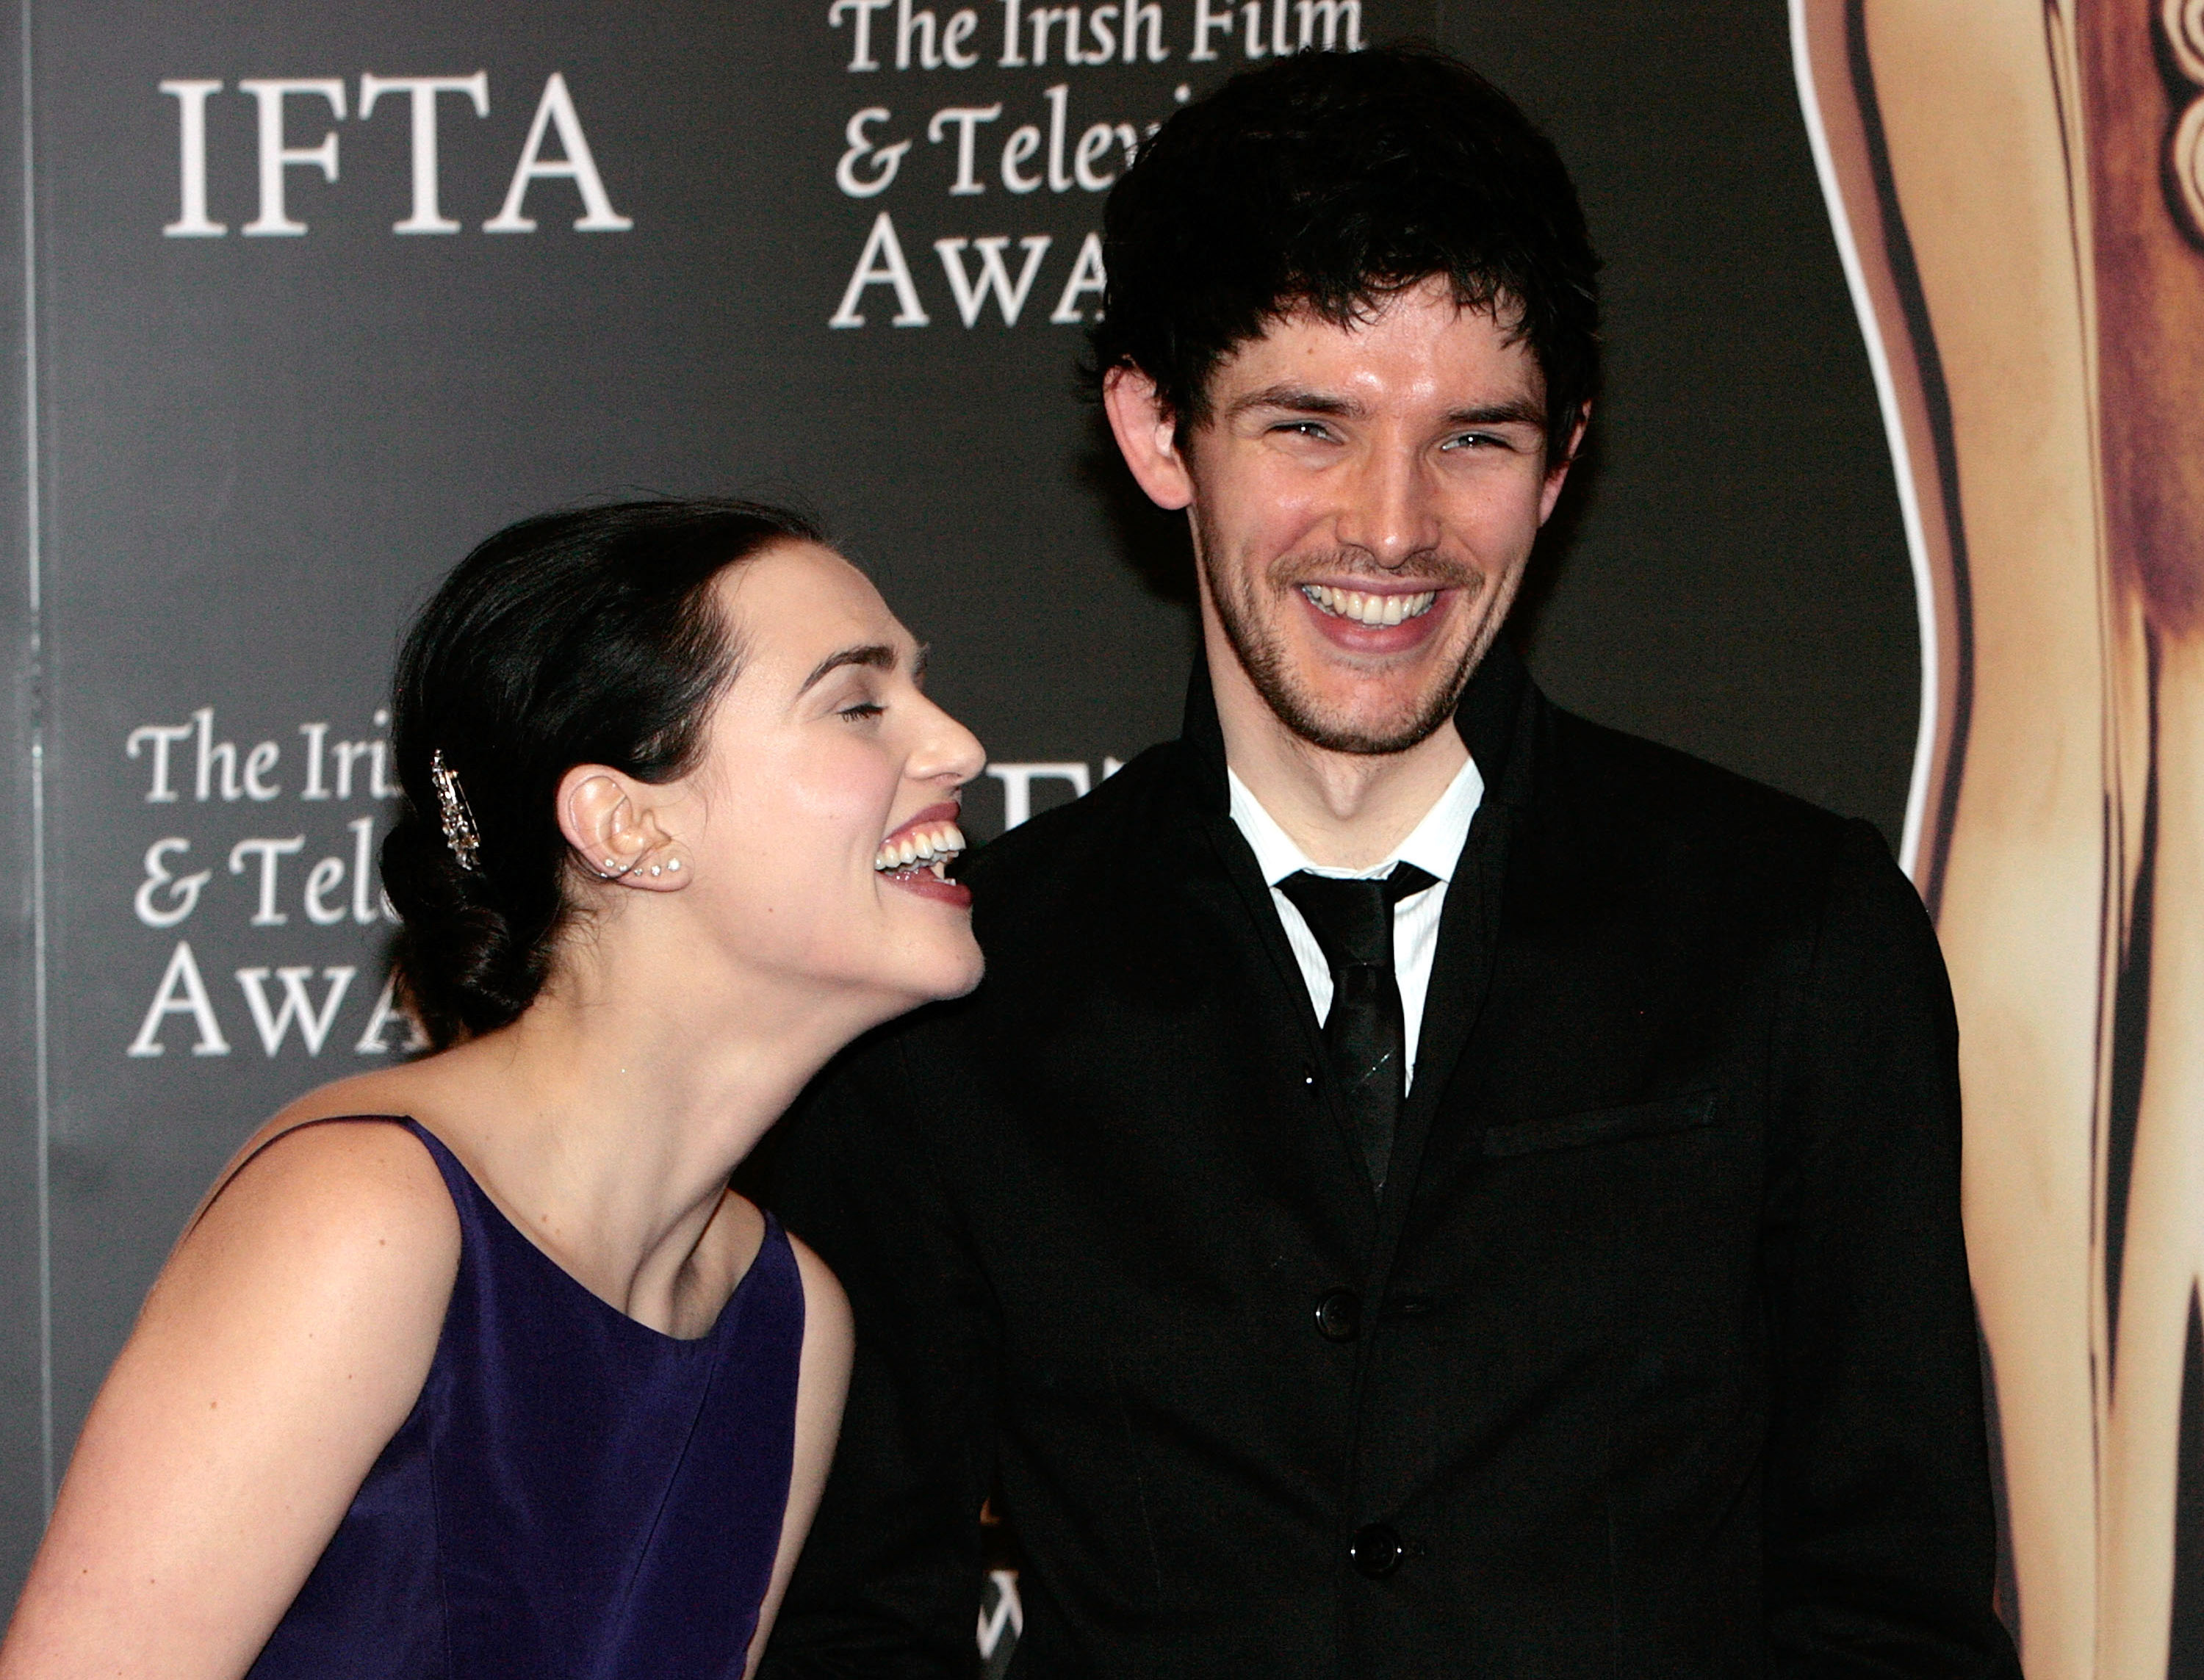 Image Katie Mcgrath And Colin Morgan 5 Jpg Merlin Wiki